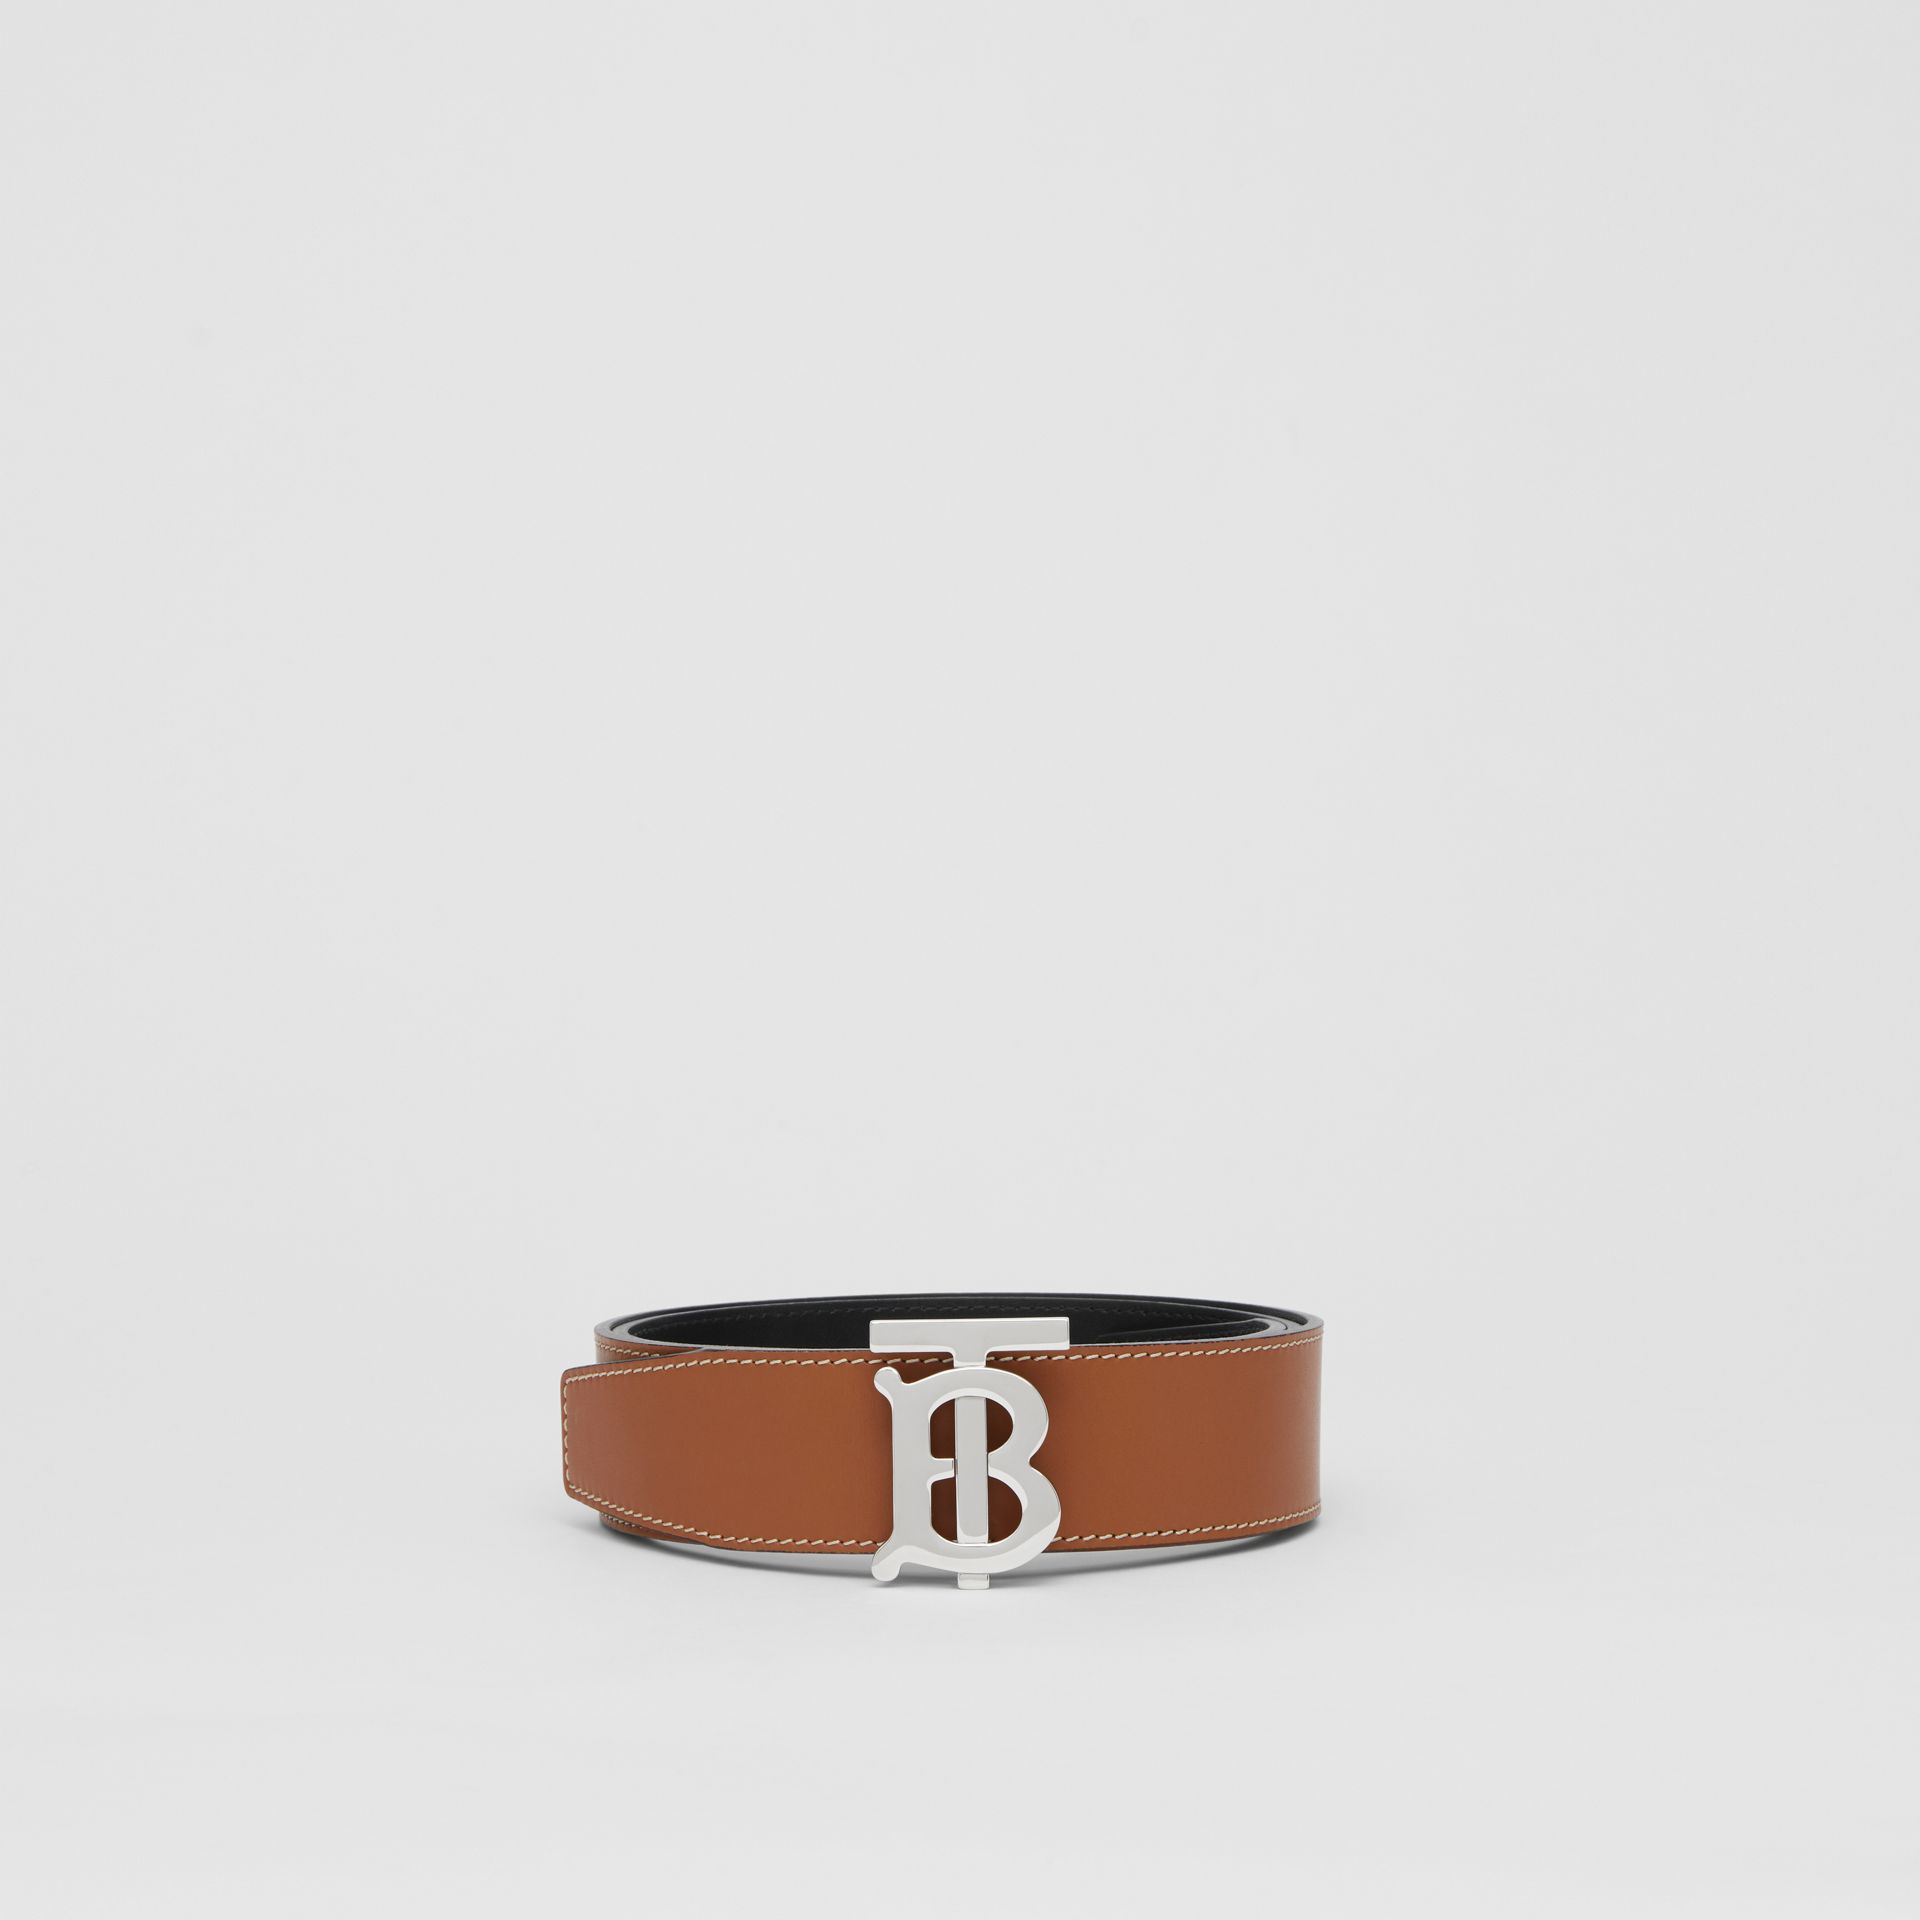 Reversible Monogram Motif Leather Belt in Tan/black - Men | Burberry Australia - gallery image 3